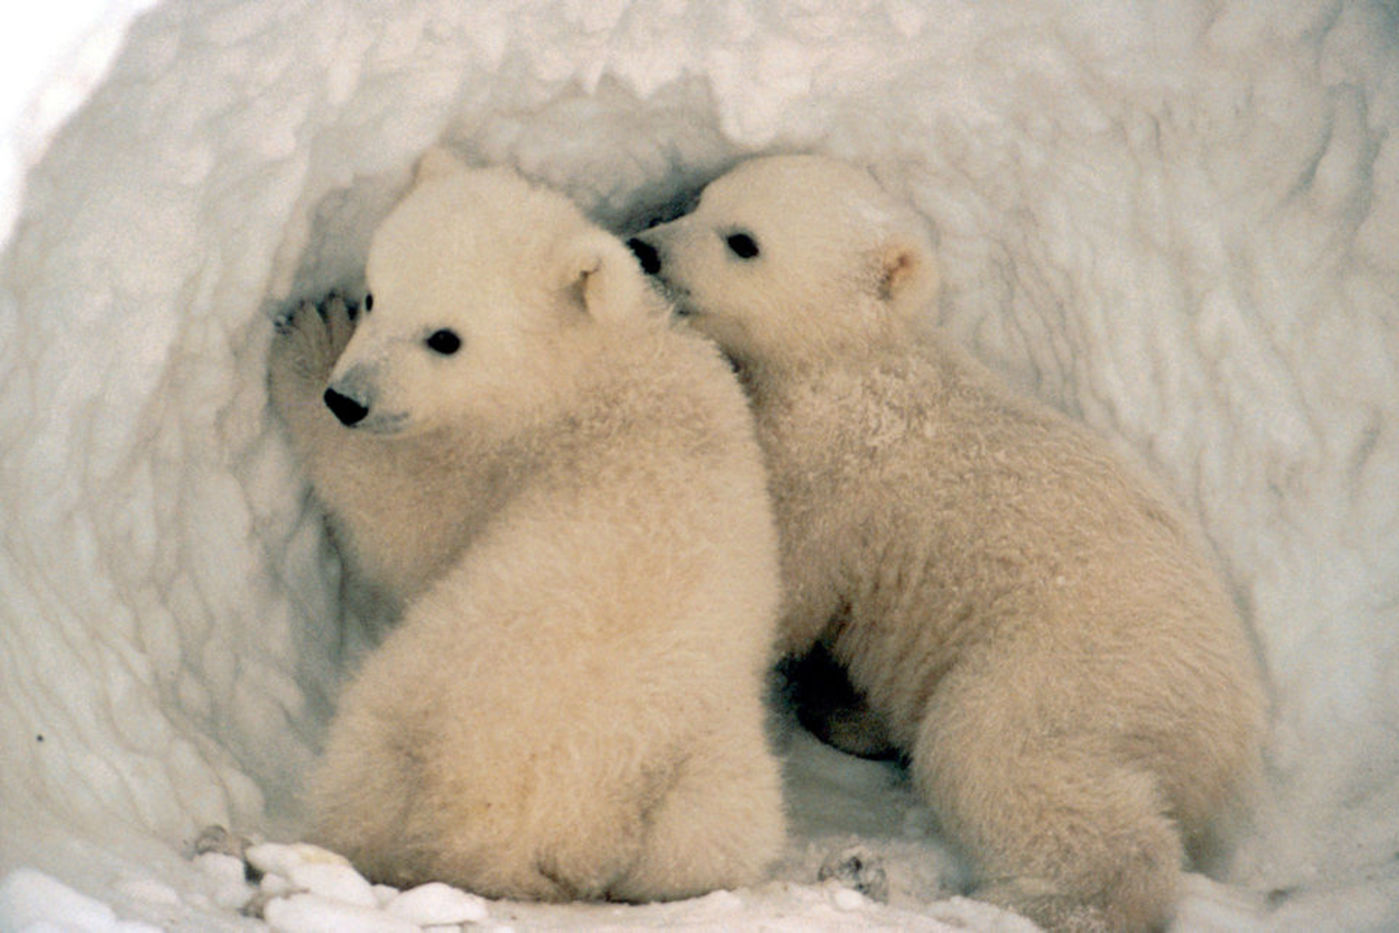 Two polar bear cubs in a snow den